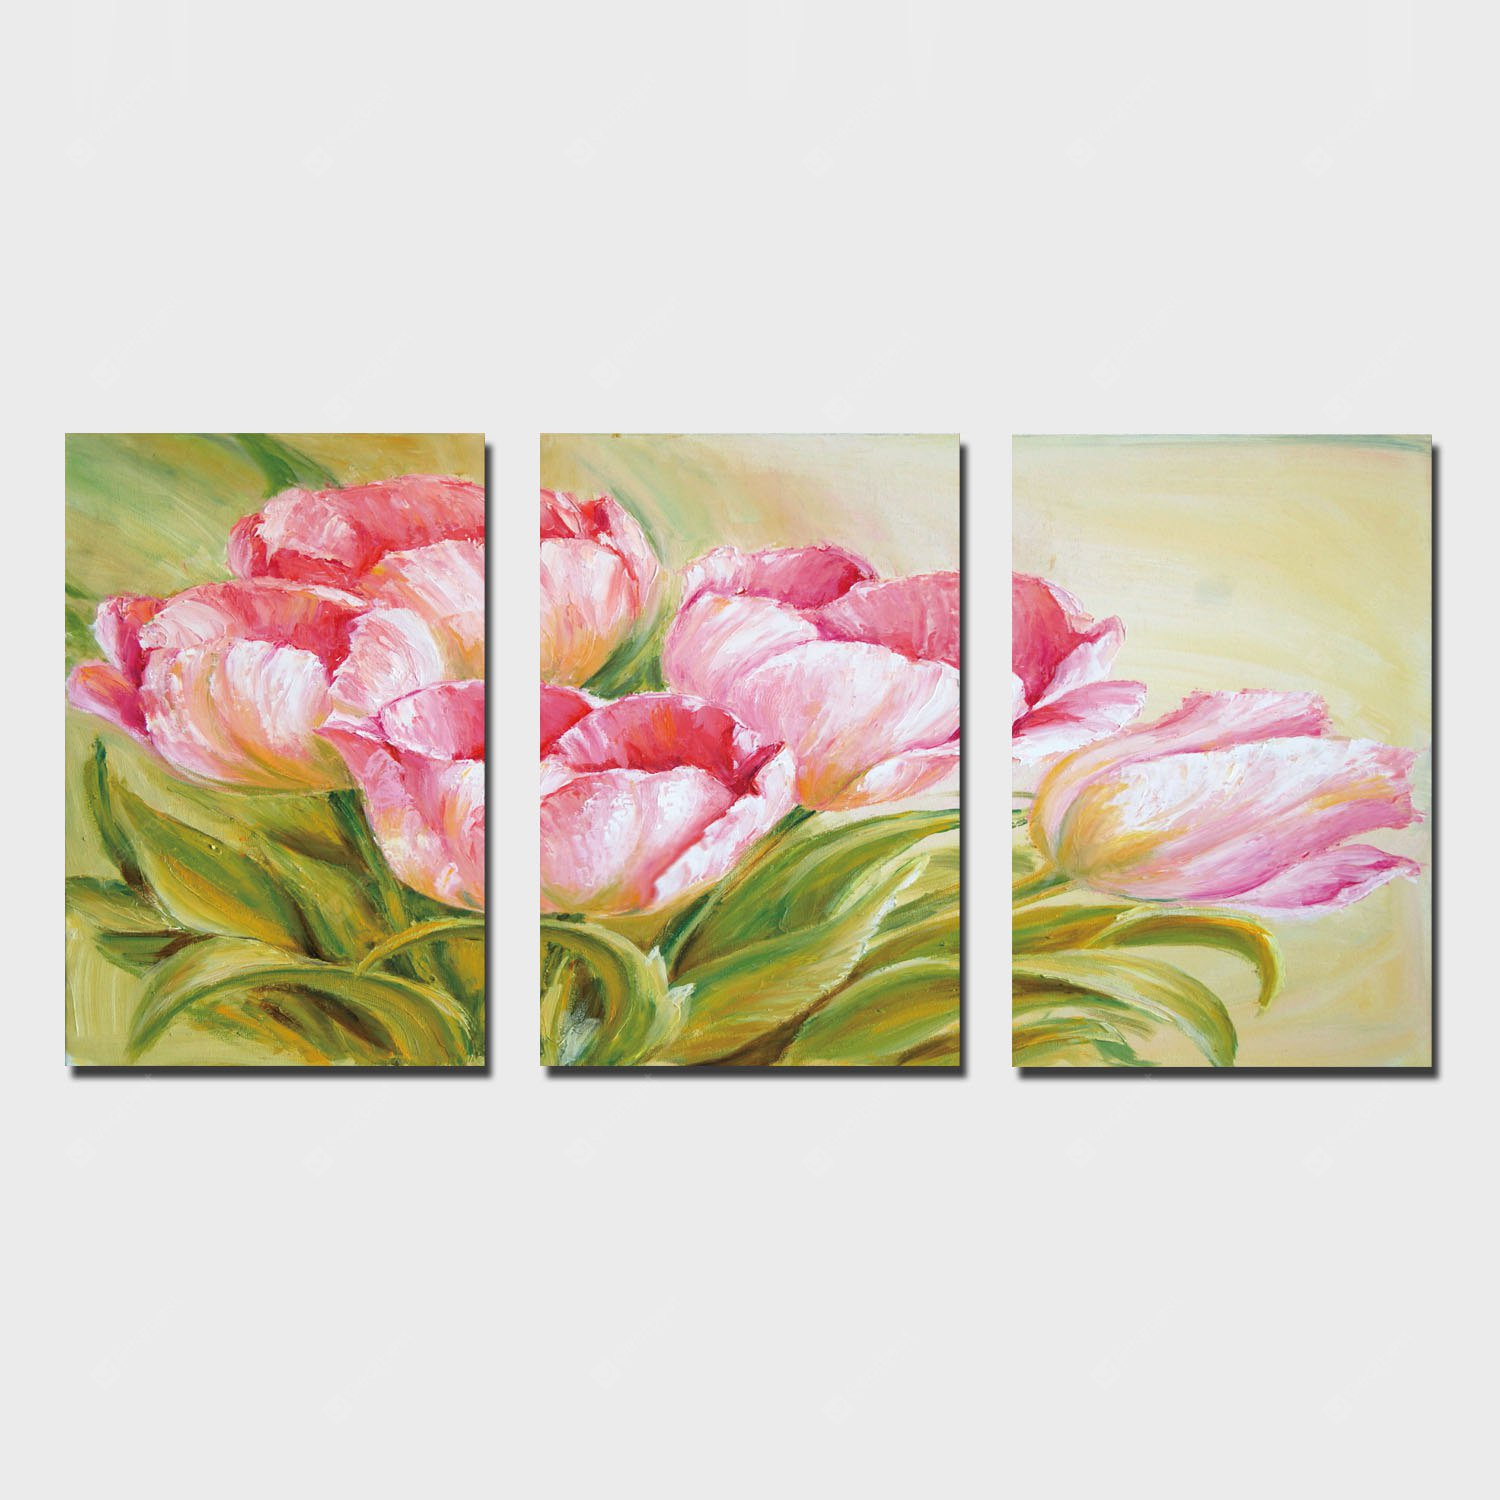 YSDAFEN 3PCS Print Tulip Wall Decor for Home Decoration